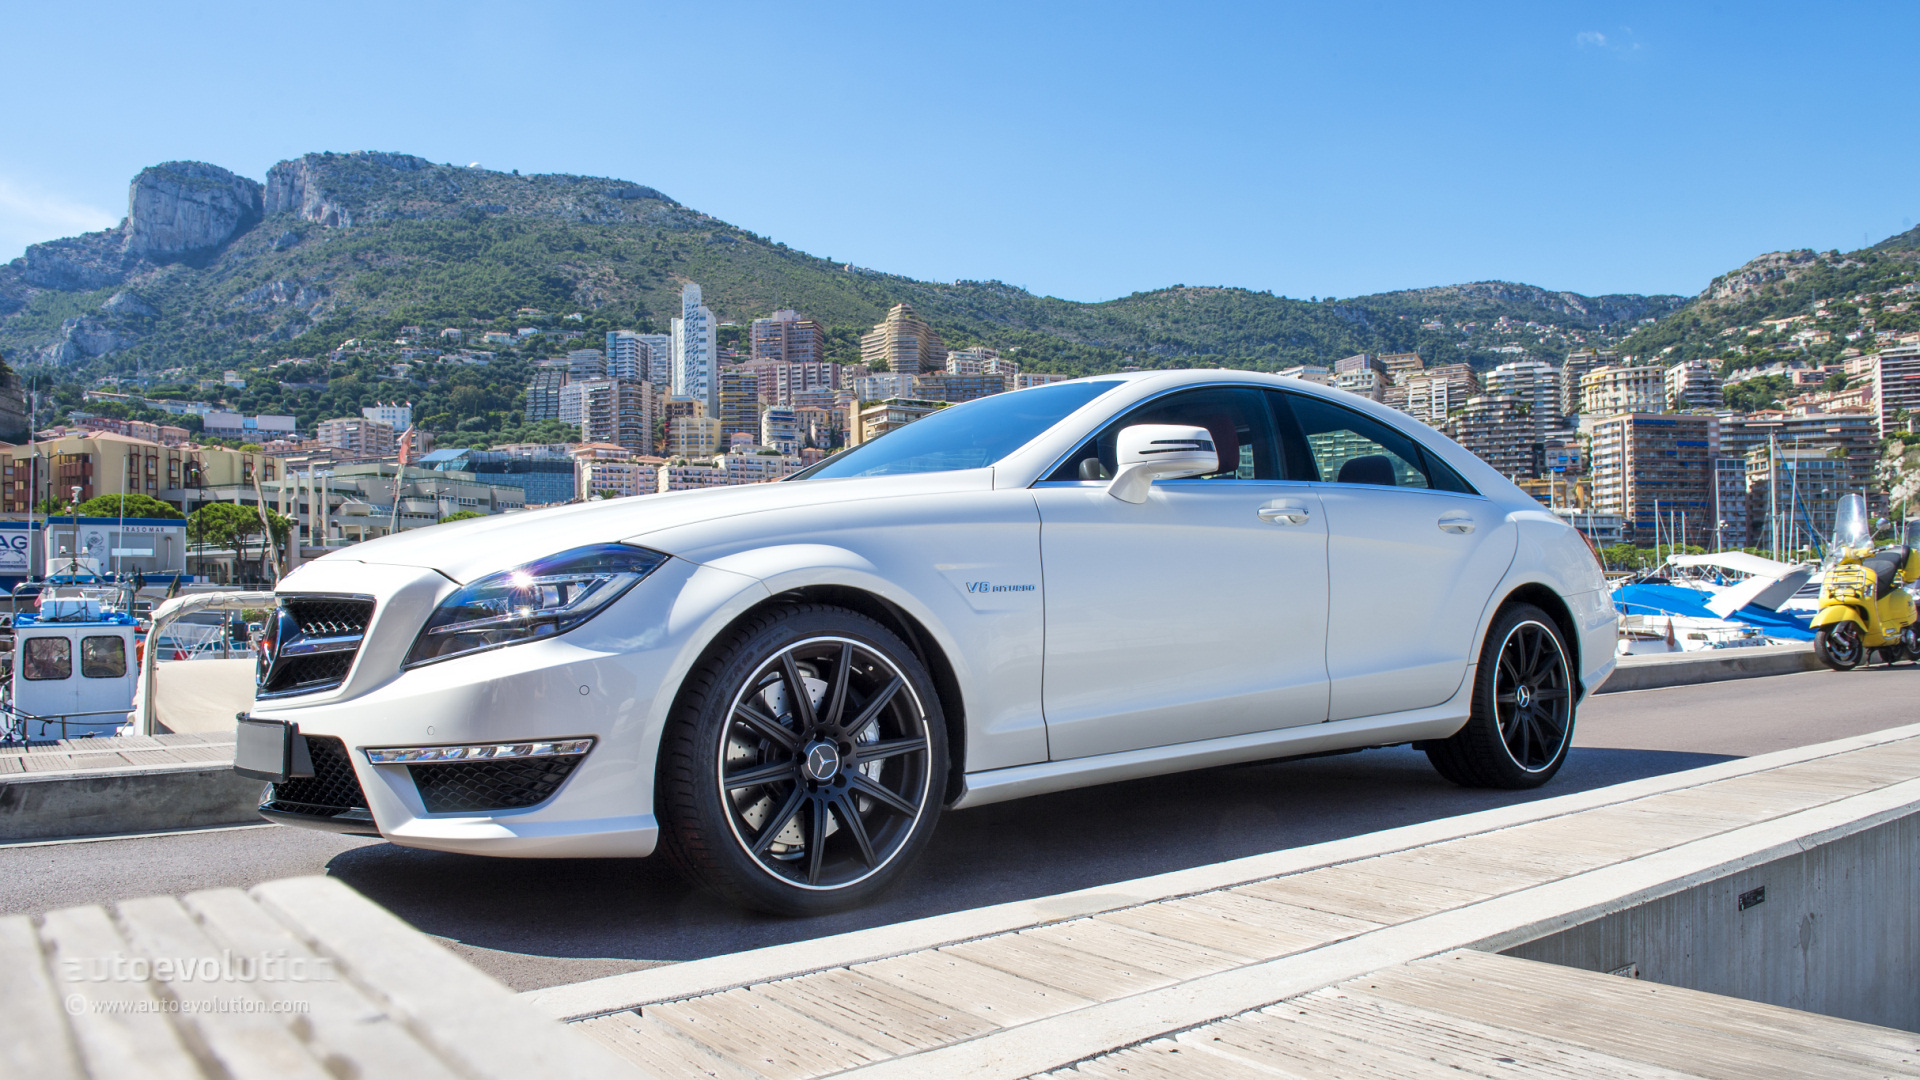 2014 cls63 amg s model price autos post for Mercedes benz cls63 price